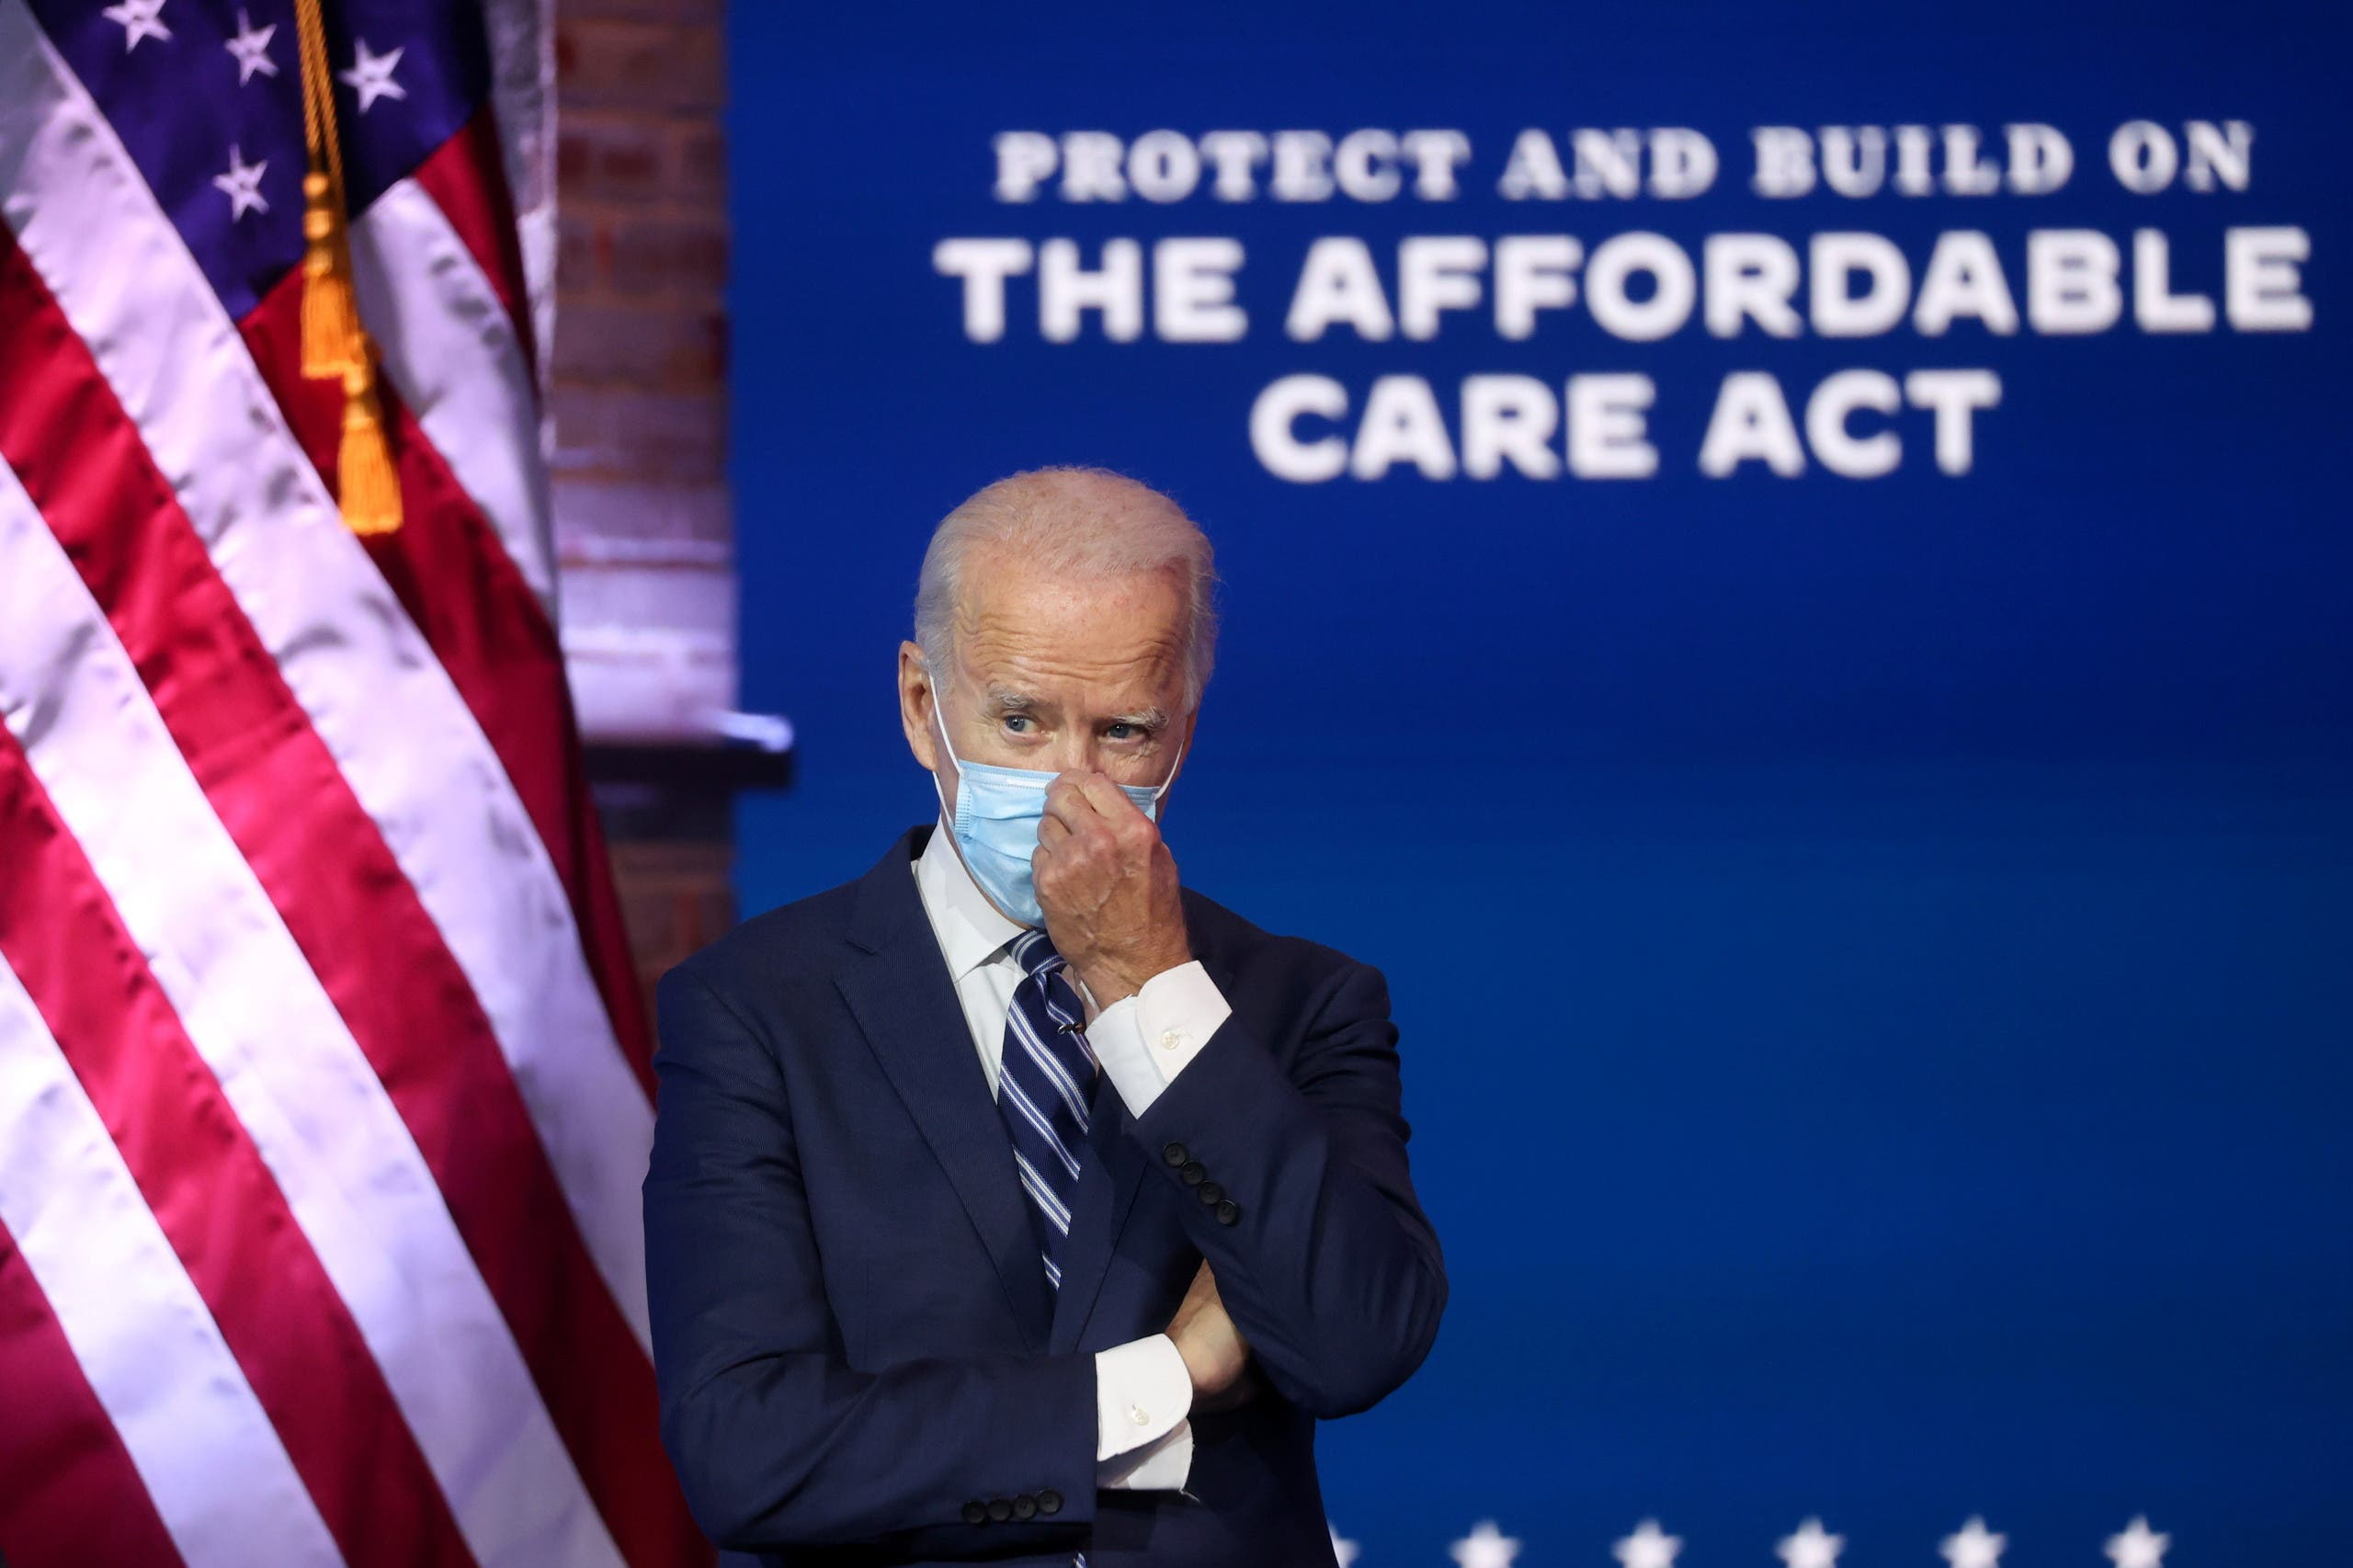 U.S. President-elect Joe Biden discusses protecting the Affordable Care Act (ACA) as he speaks to reporters during a news conference in Wilmington, Delaware, U.S., November 10, 2020. (Reuters)